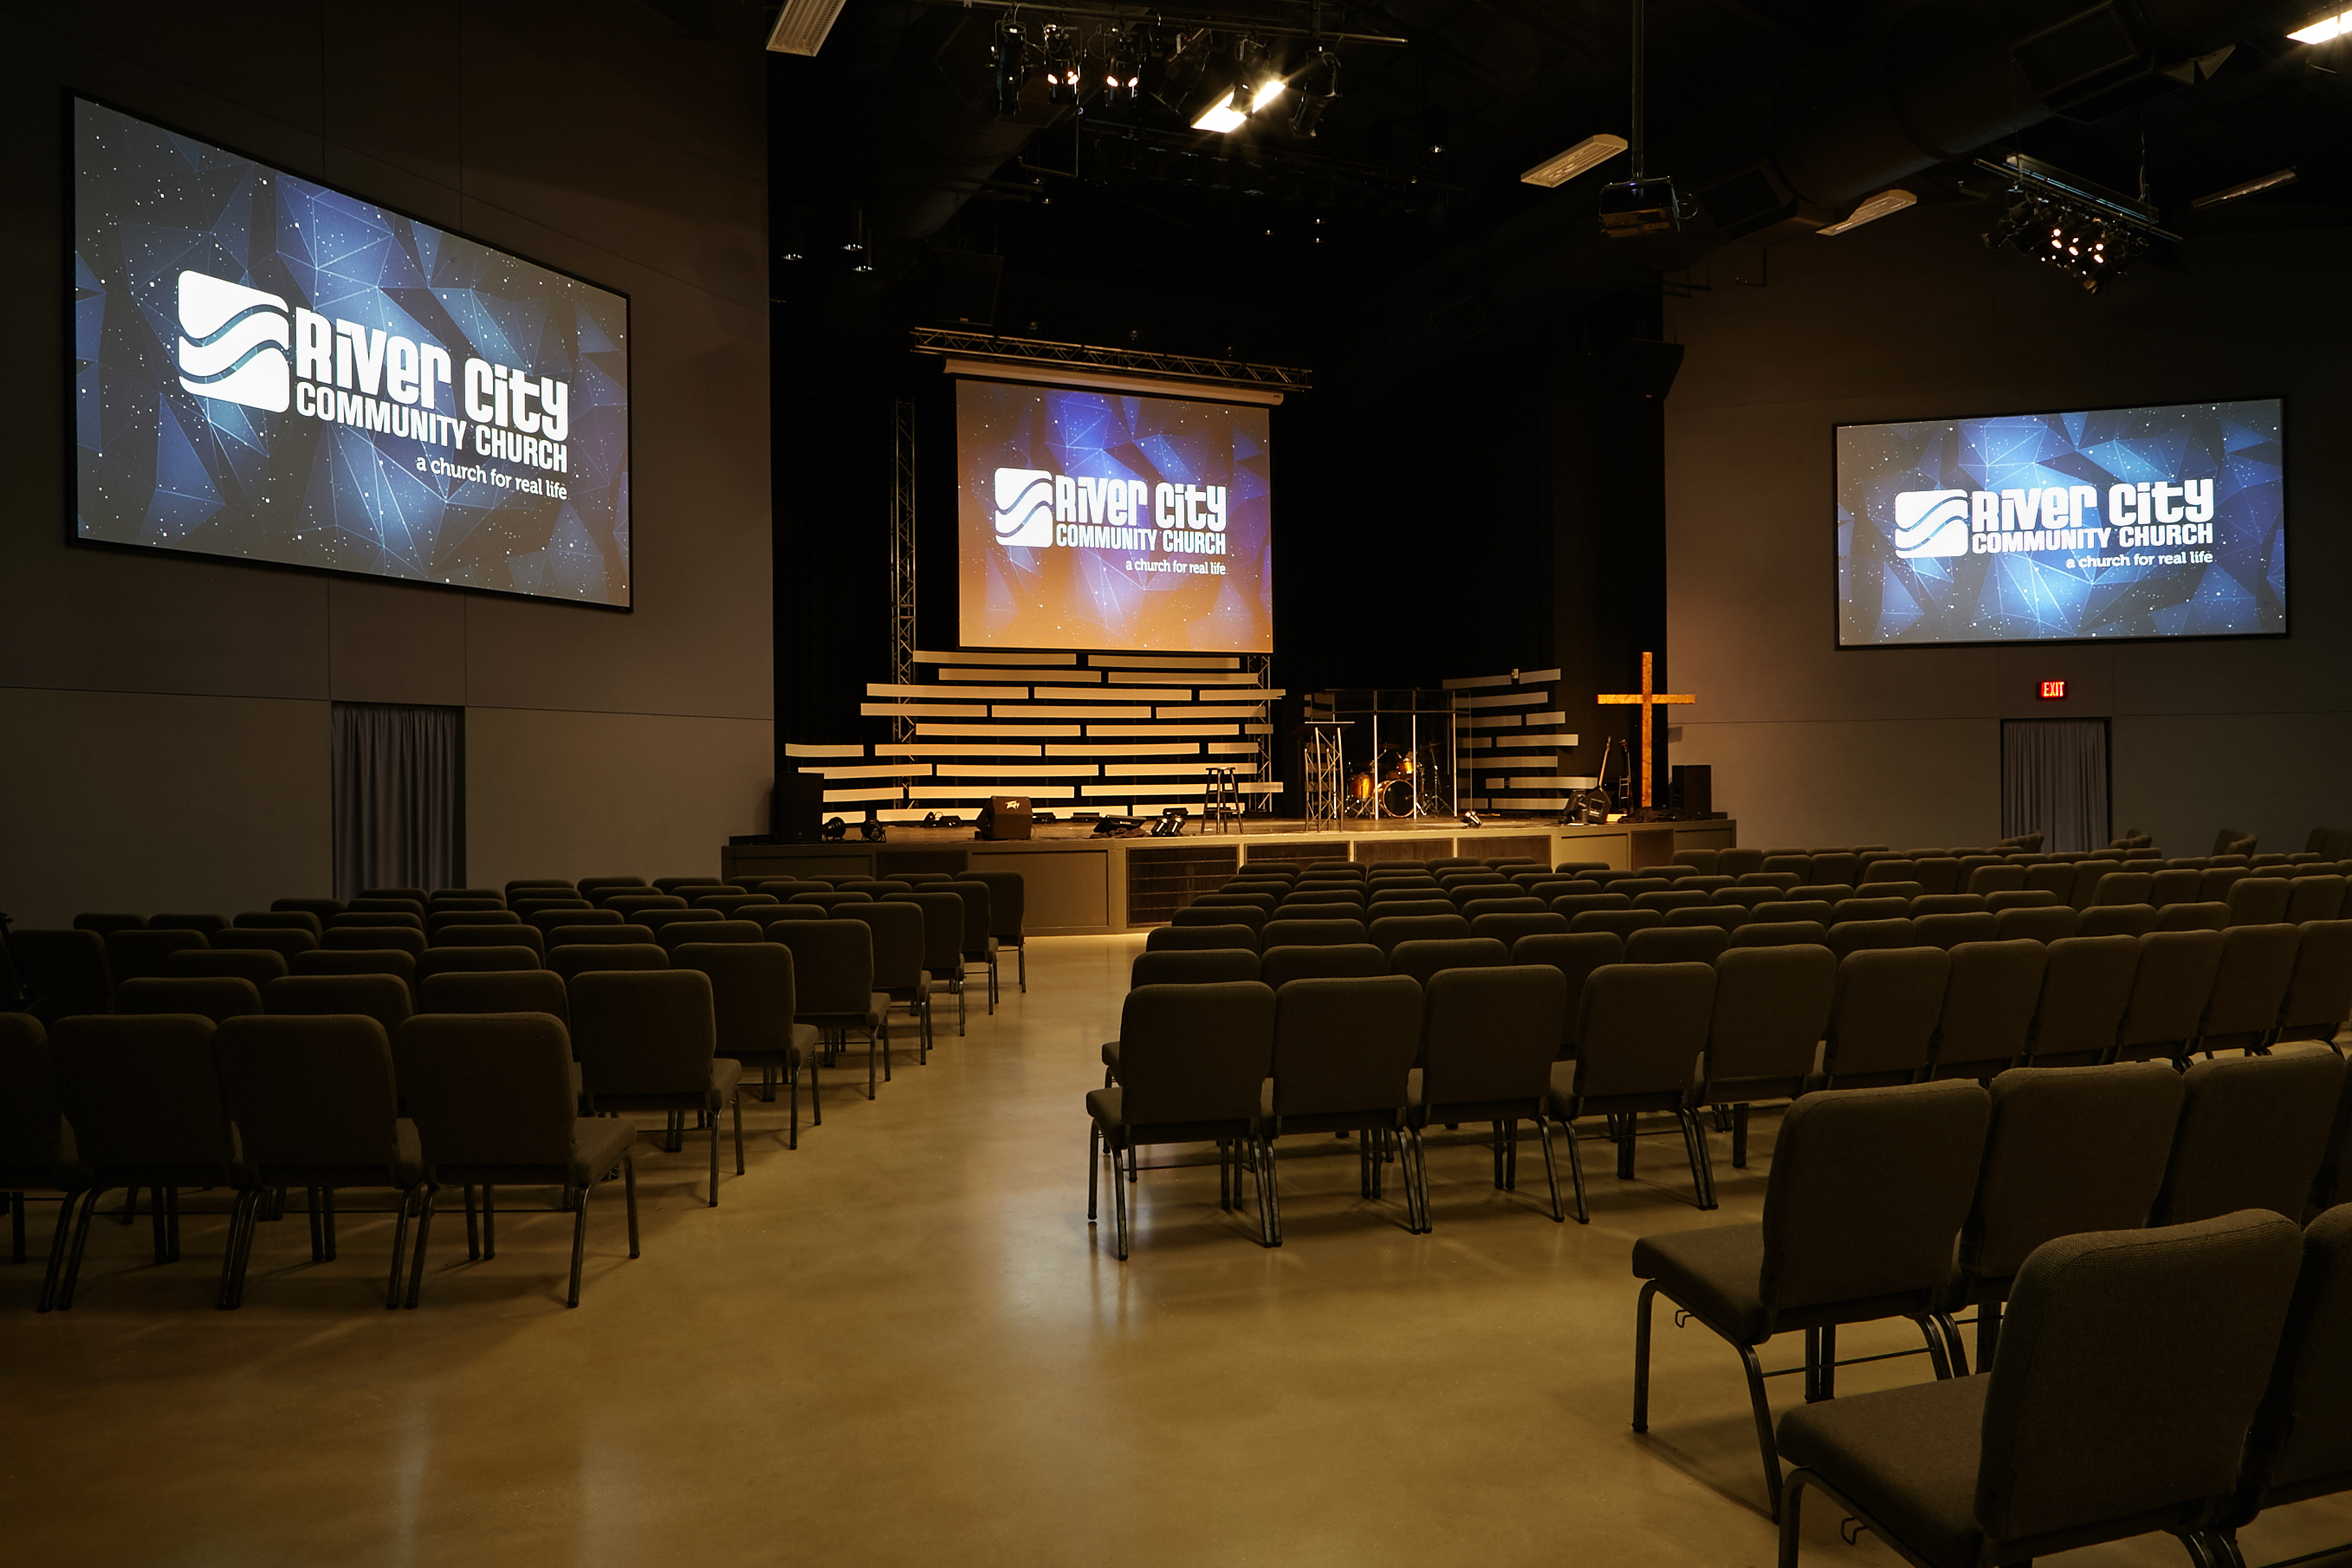 River City Community Church 3